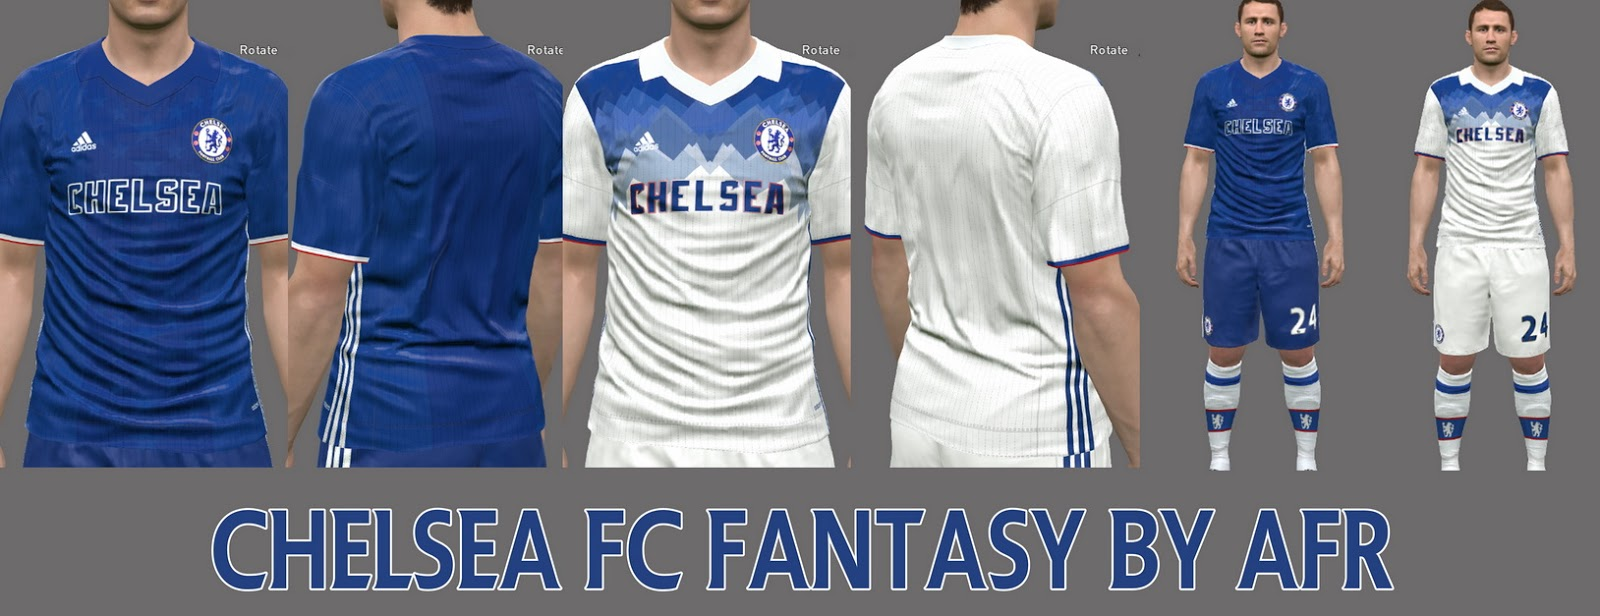 Pes-modif: PES 2016 Chelsea Fantasy Kits By AFR